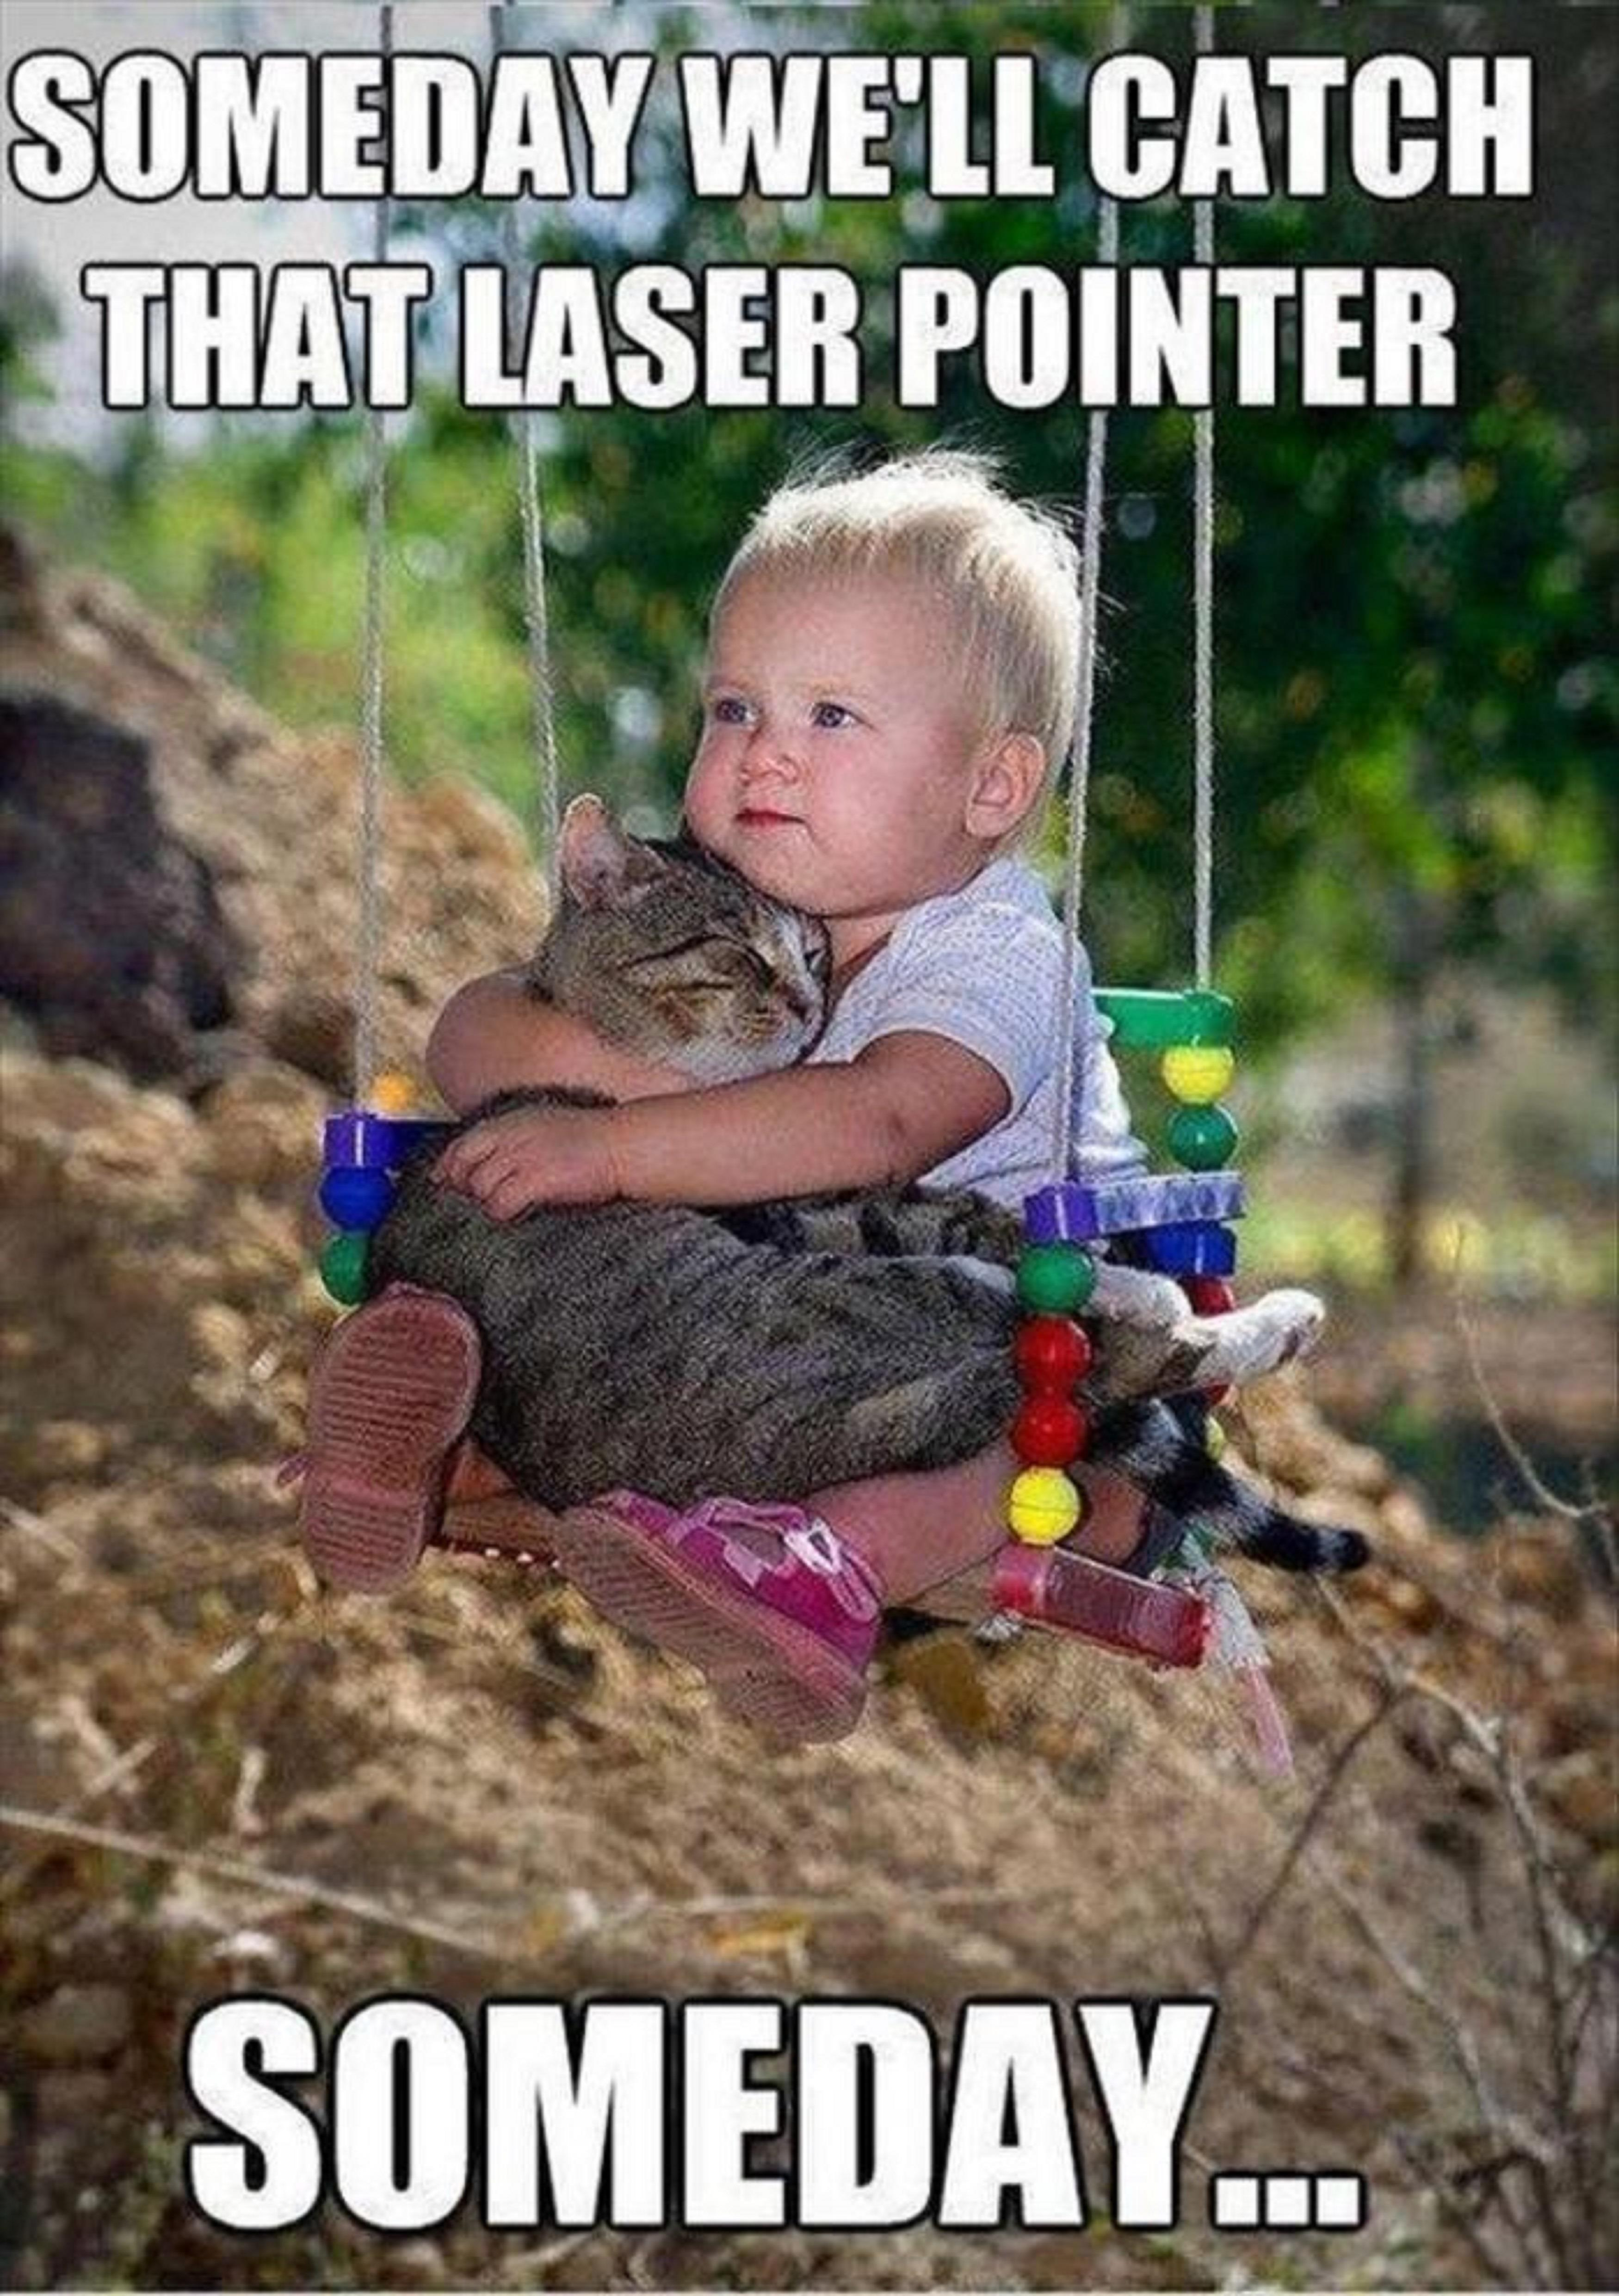 Funny Memes For Teenagers : Funny cats cute meme kids laser pointer